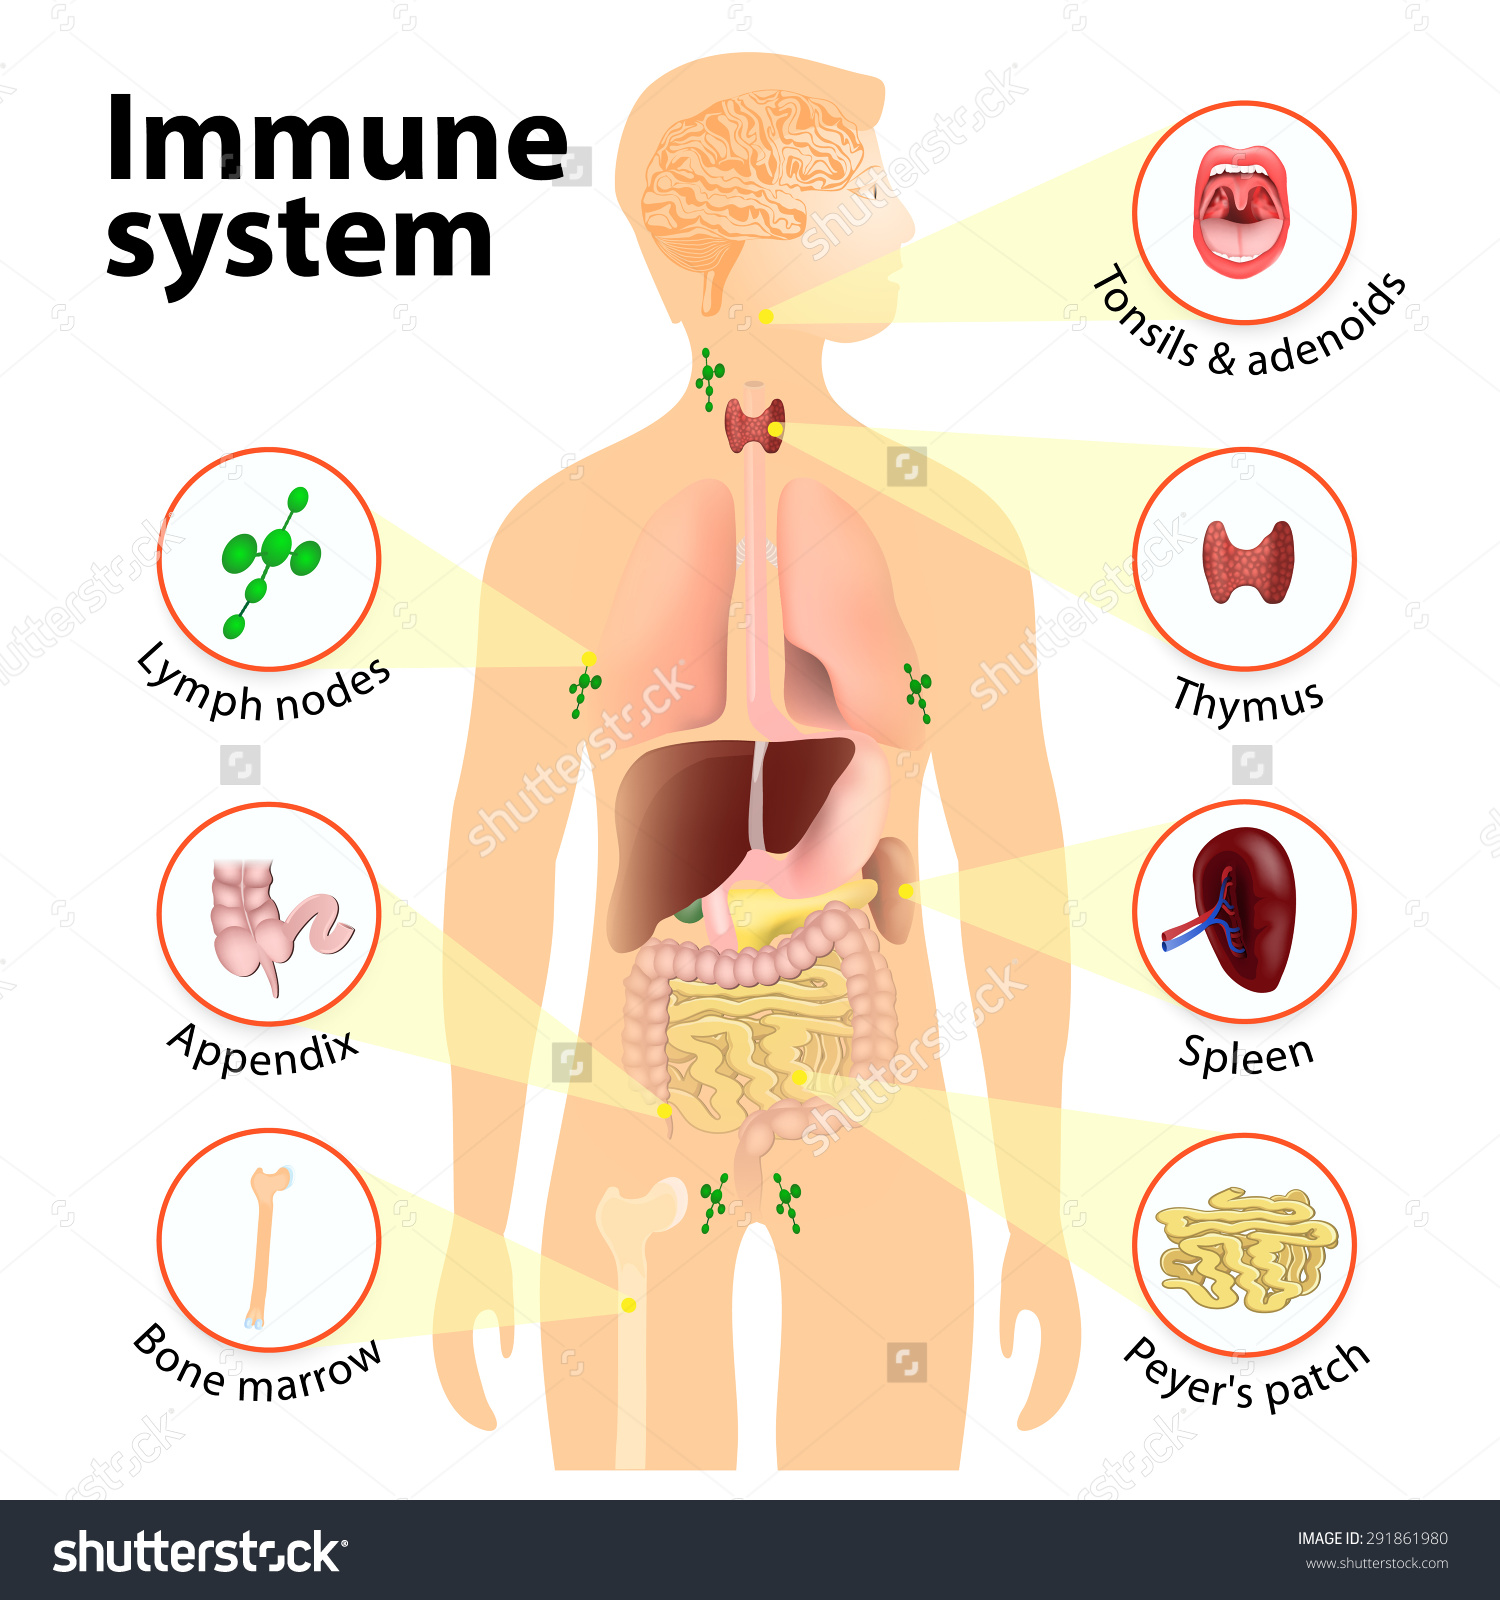 Immune system in the body clipart.